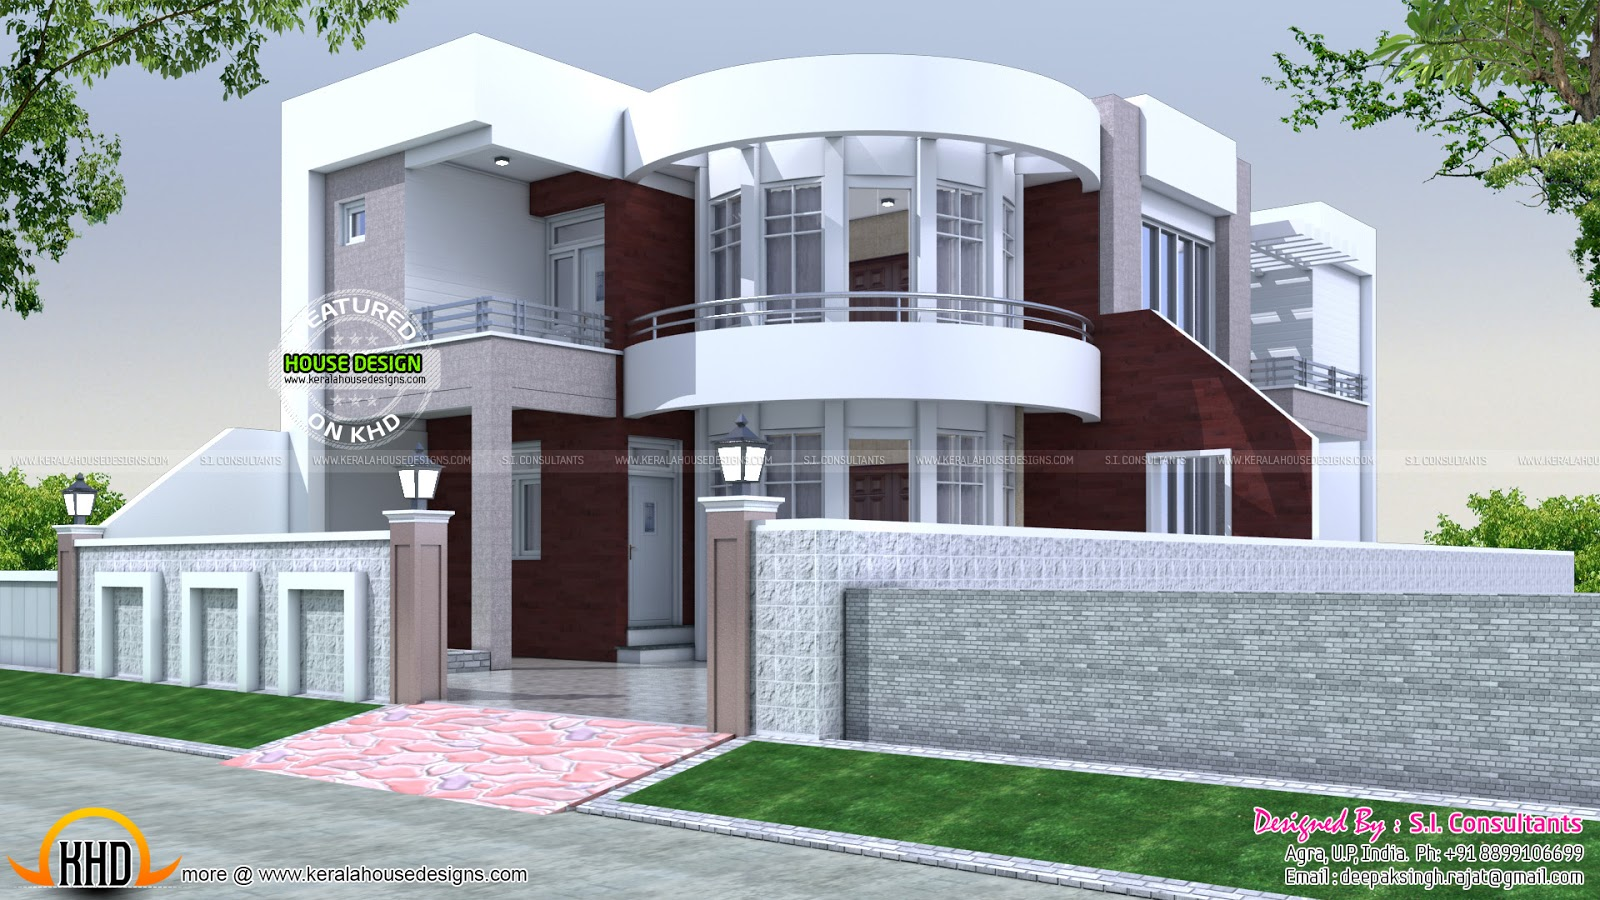 One Square Meter In Square Feet September 2015 Kerala Home Design And Floor Plans